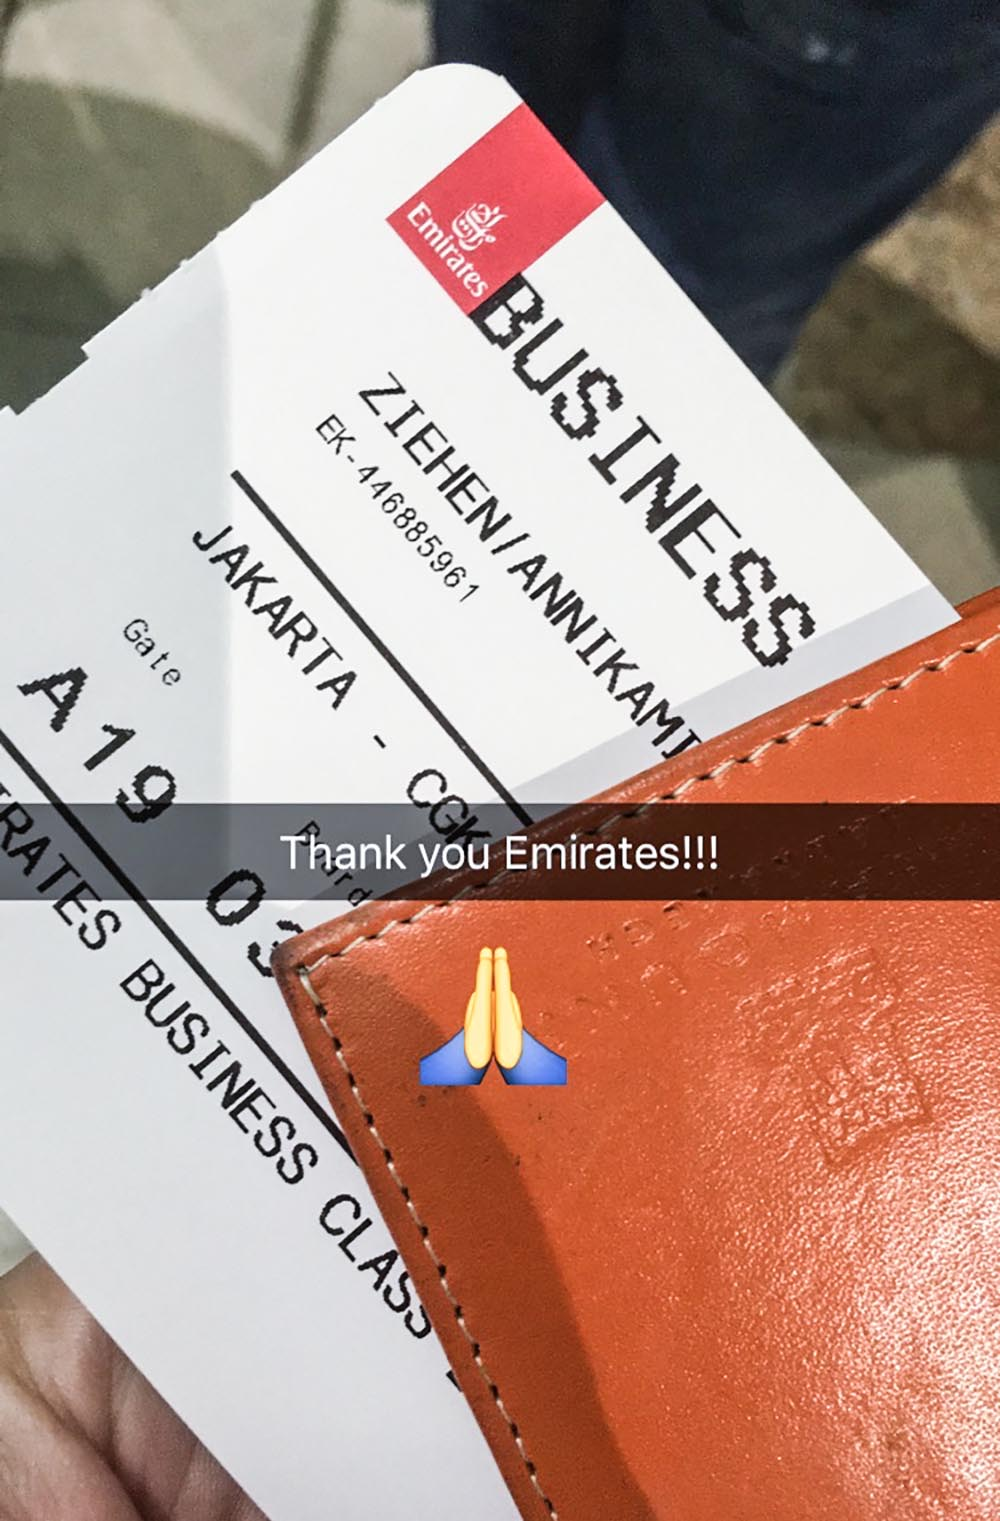 How do you make the most of a missed connection? On a 48-hour trip via Dubai to Jakarta I learned what to do and what not to do.